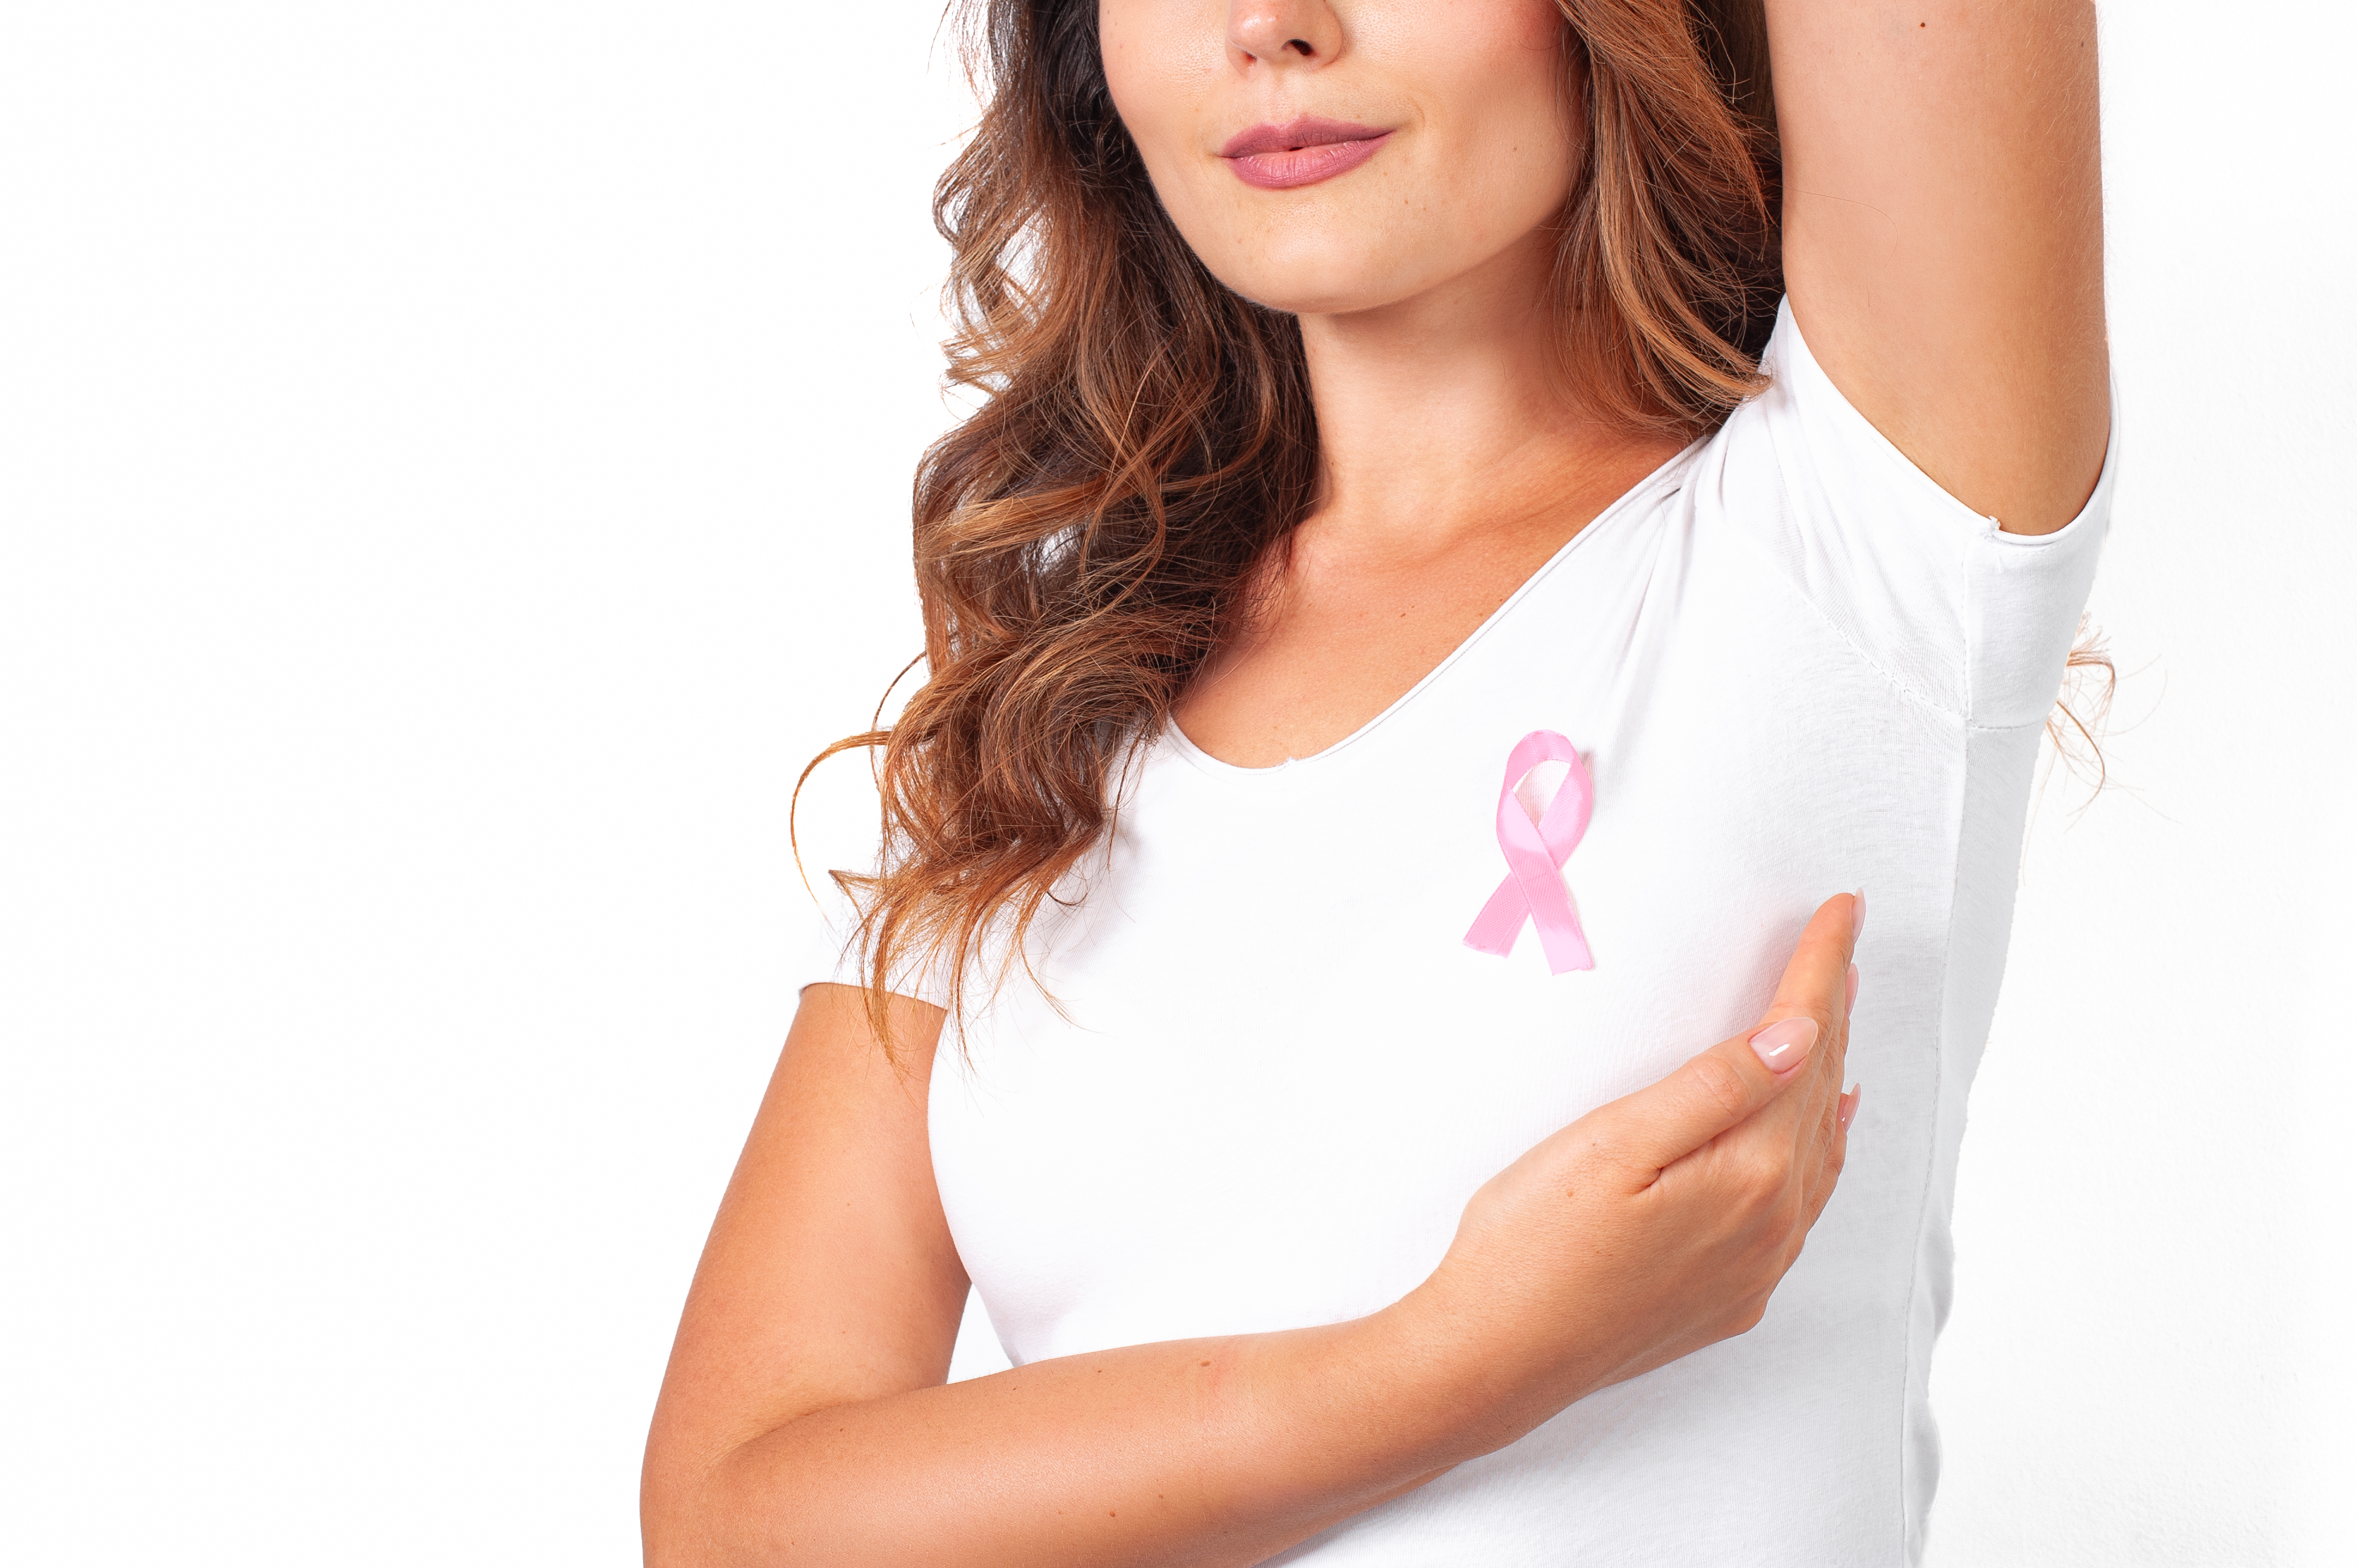 Woman in white t-shirt with pink ribbon supporting breast cancer awareness campaign. Breast Cancer Awareness Month